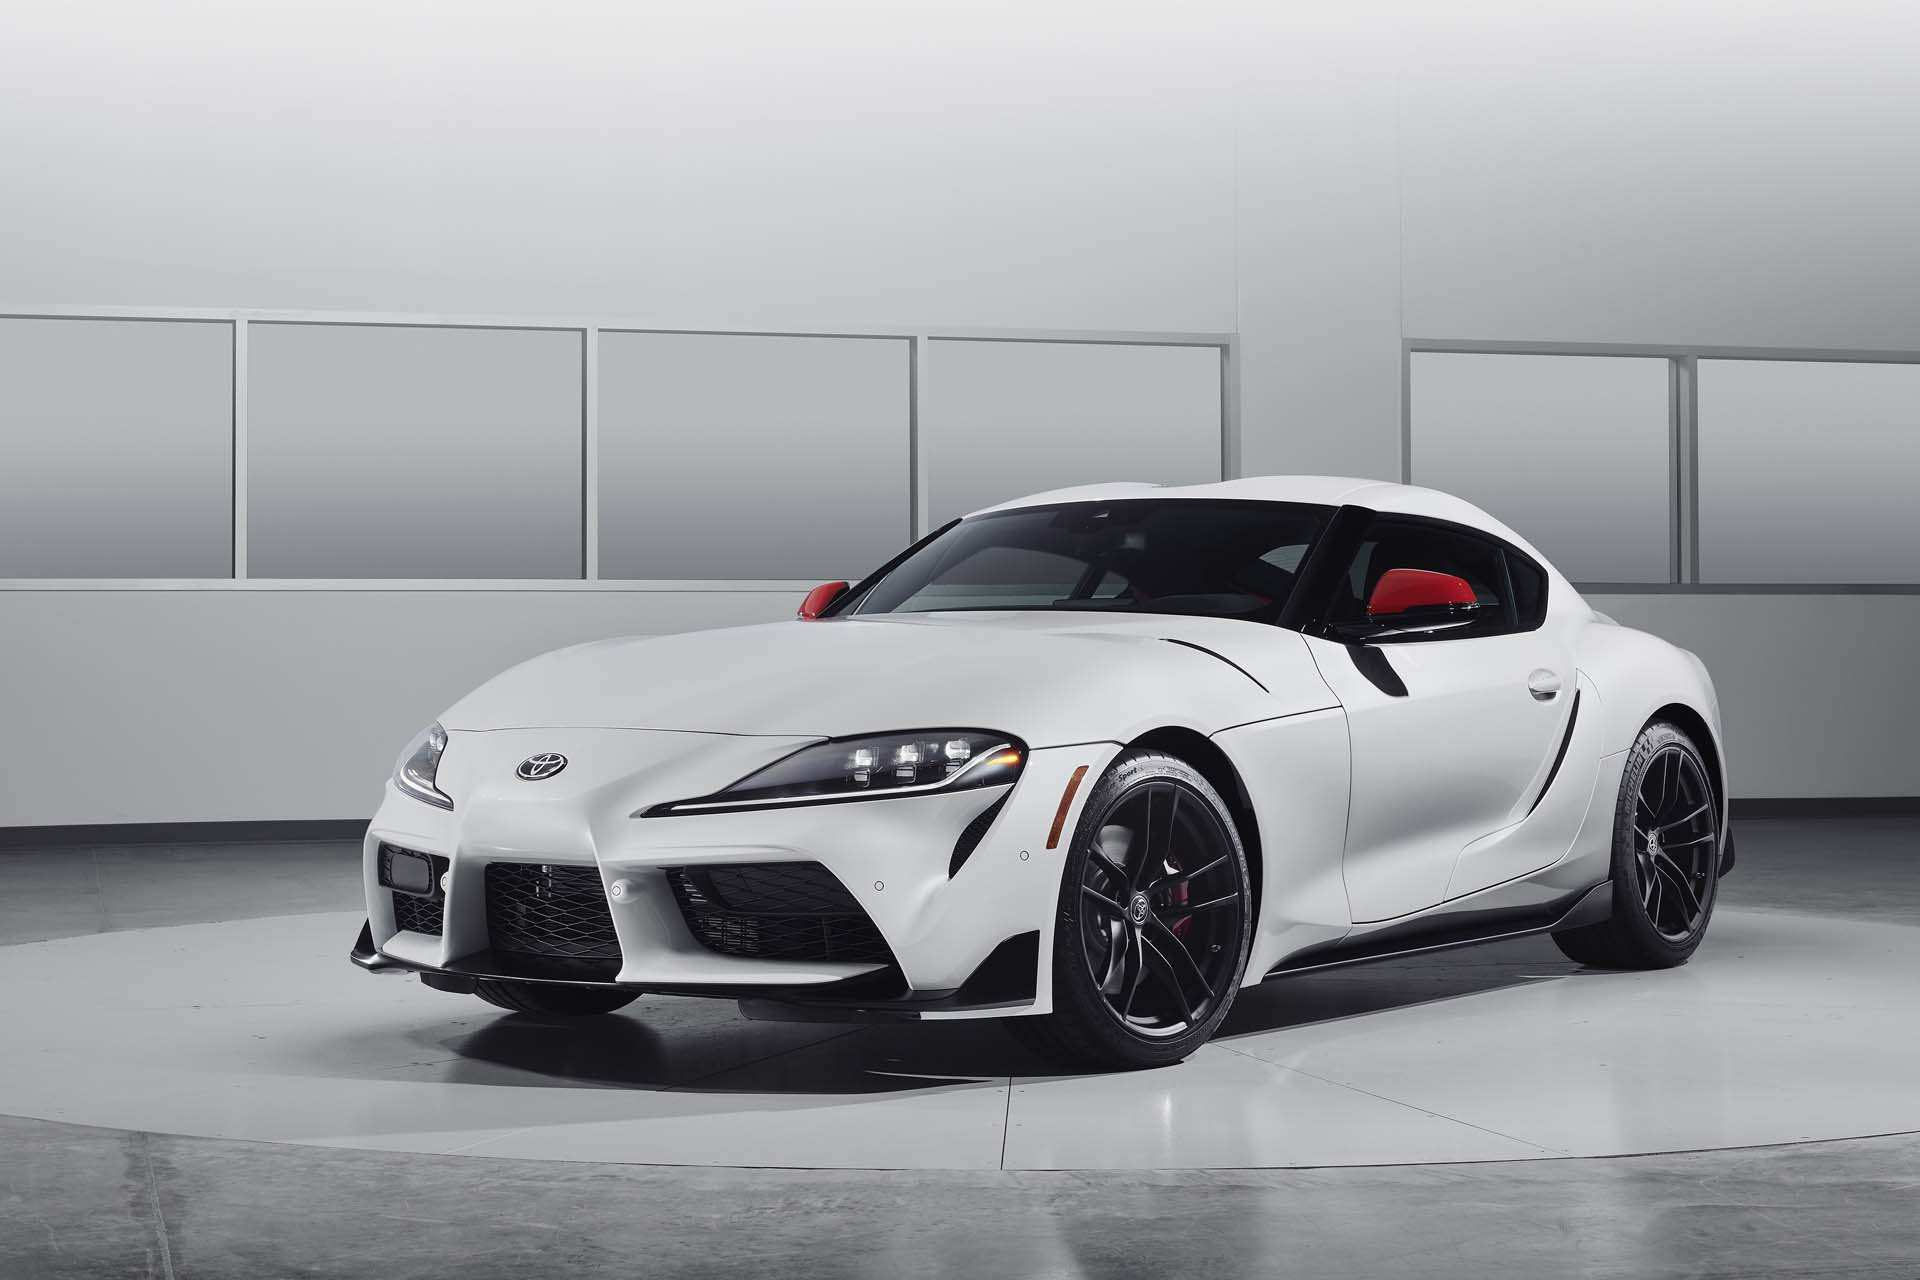 76 All New Images Of 2020 Toyota Supra Price And Release Date